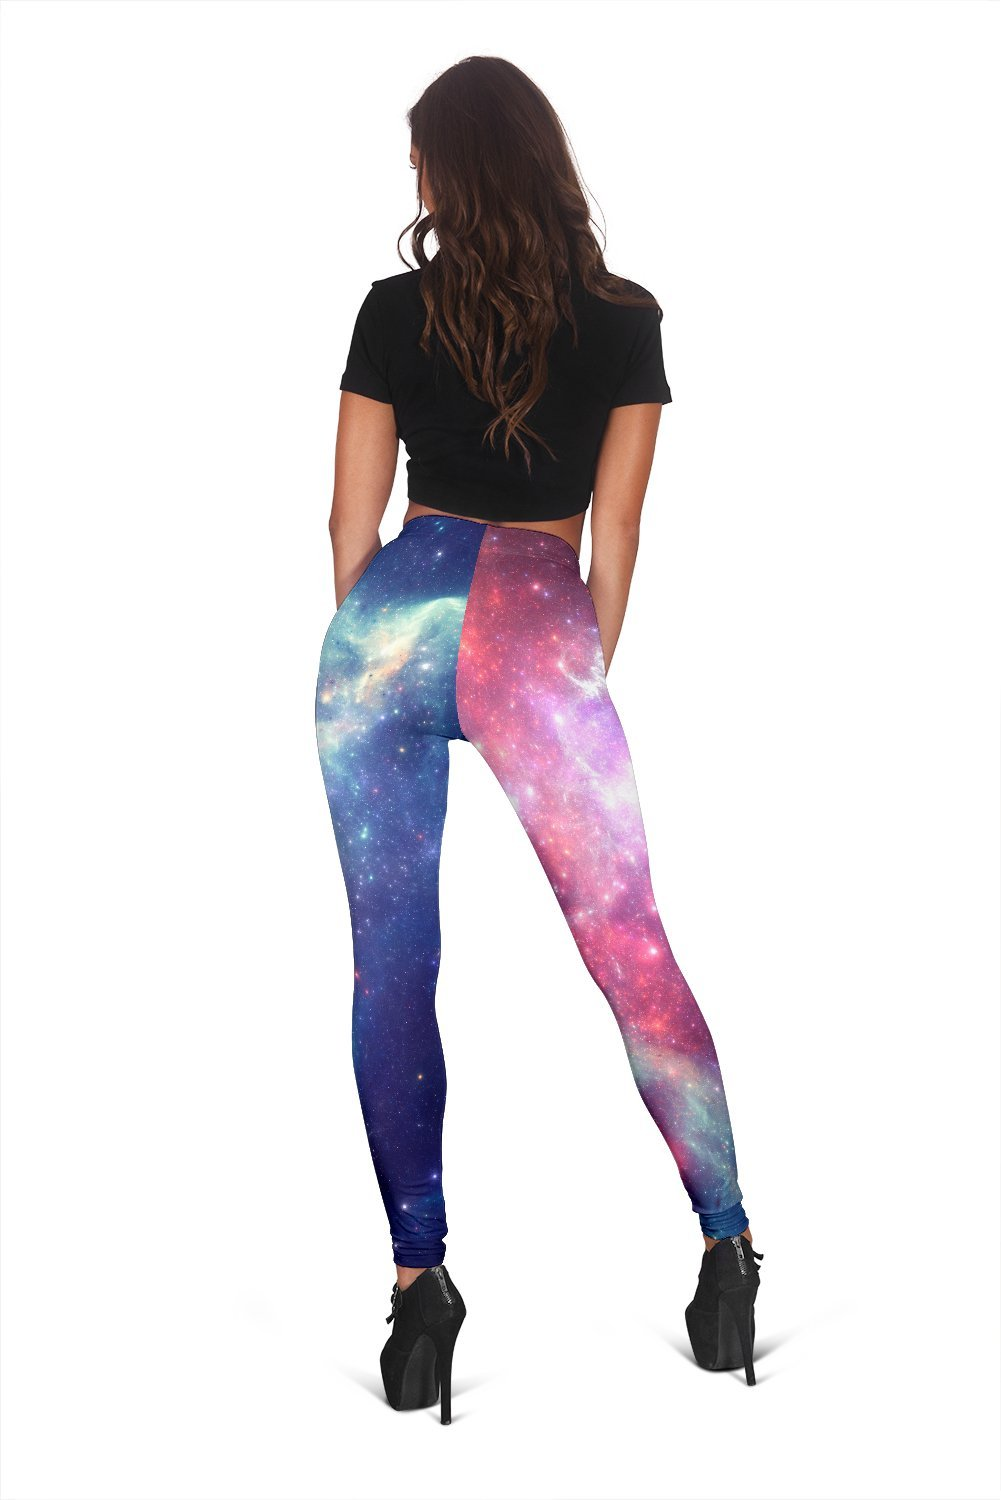 b08f4a13f69a0 ... Stars Galaxy Space Print Women's Leggings GearFrost. Product image 1 ...